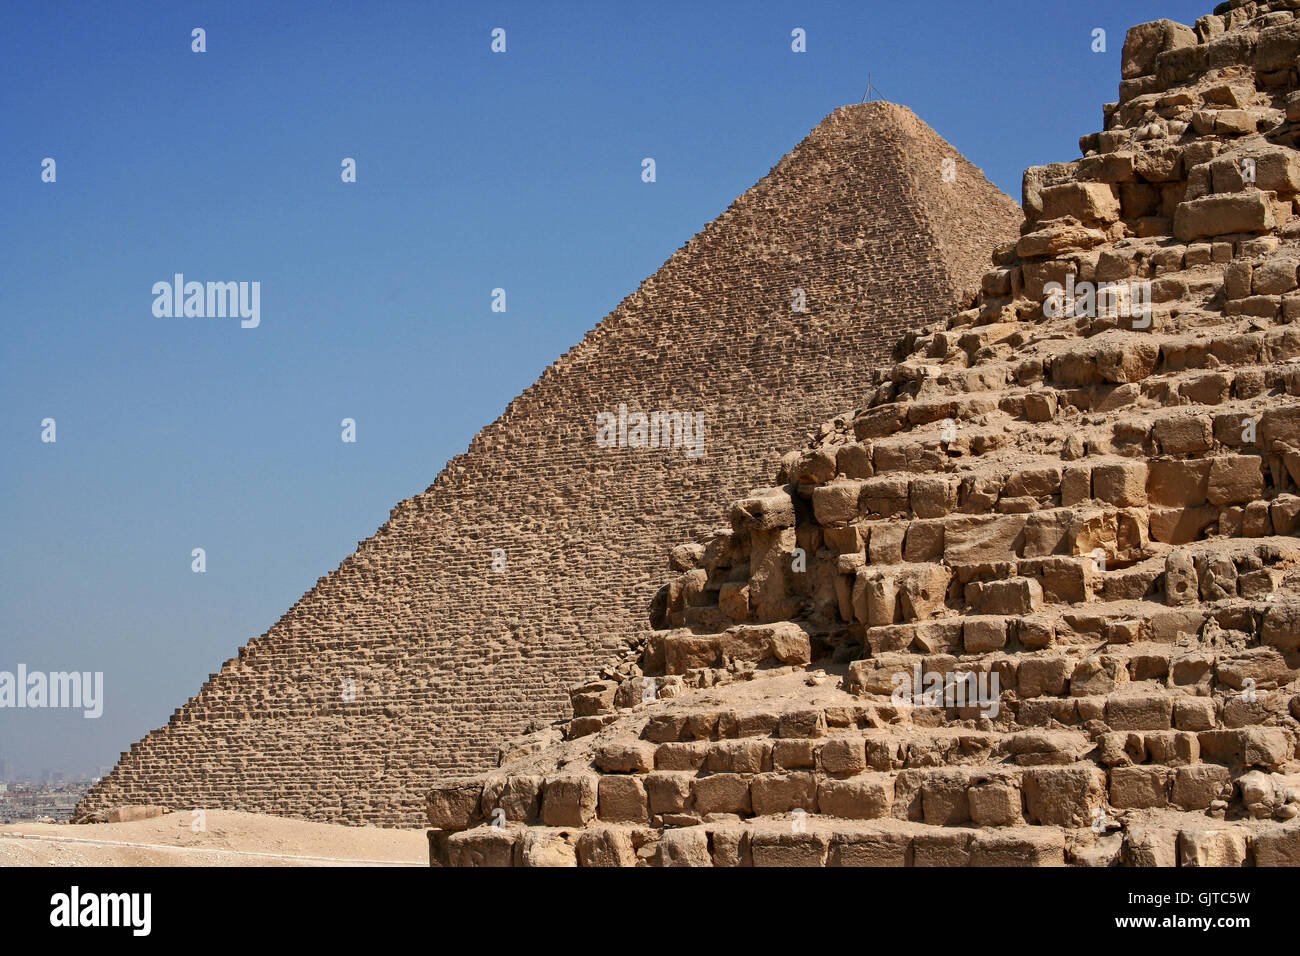 Cairo Pyramids merveille du monde Photo Stock